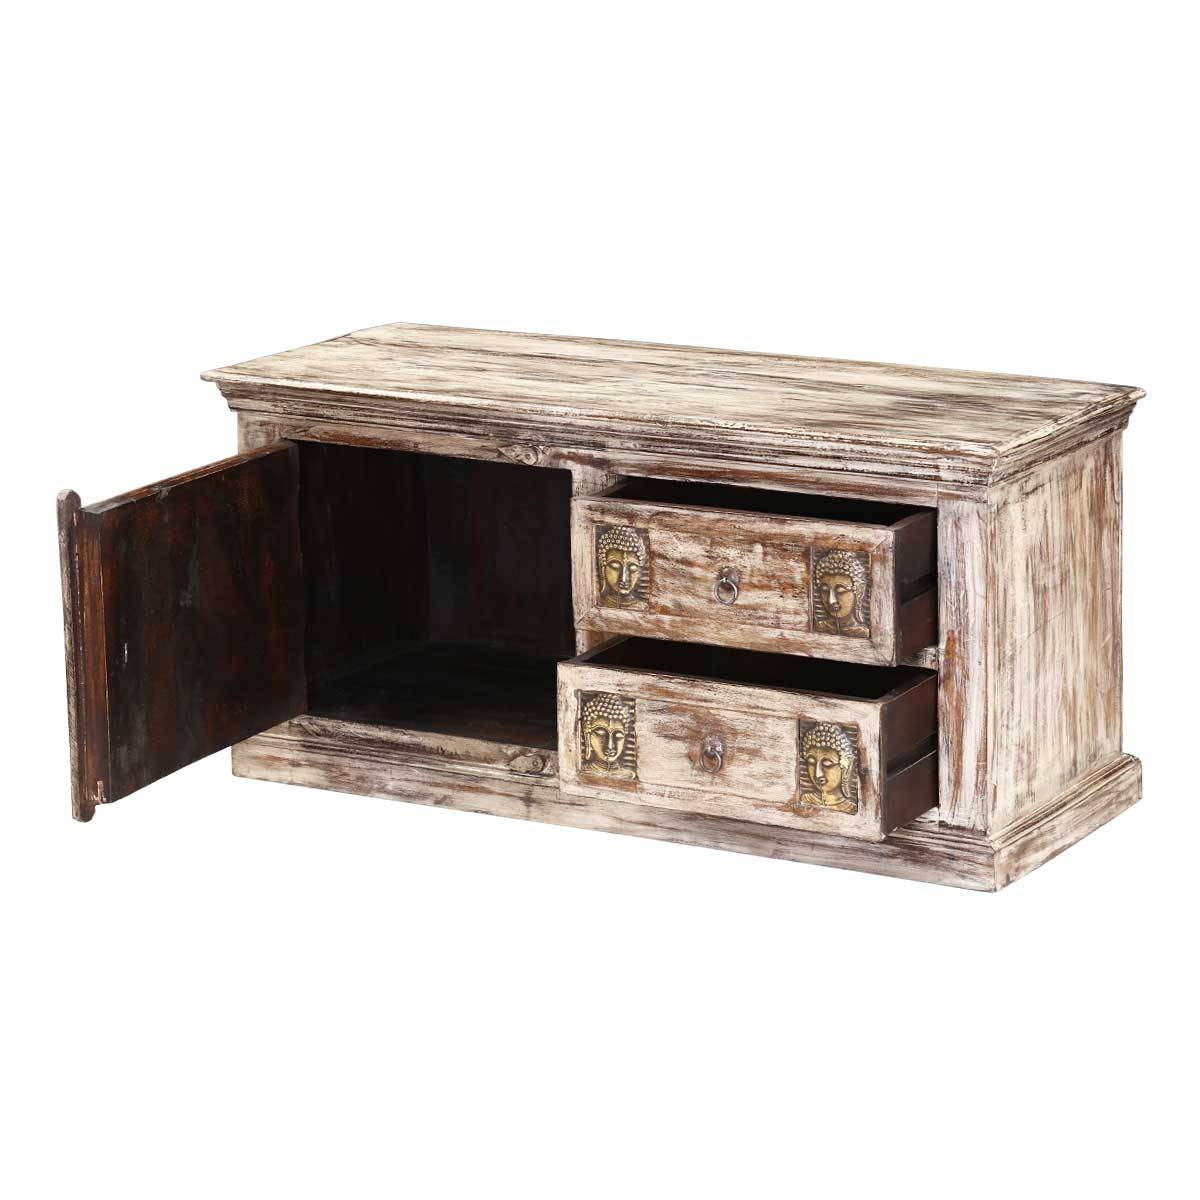 Buddha Mango Wood & Brass Rustic Coffee Table Chest with regard to Buddha Coffee Tables (Image 15 of 30)